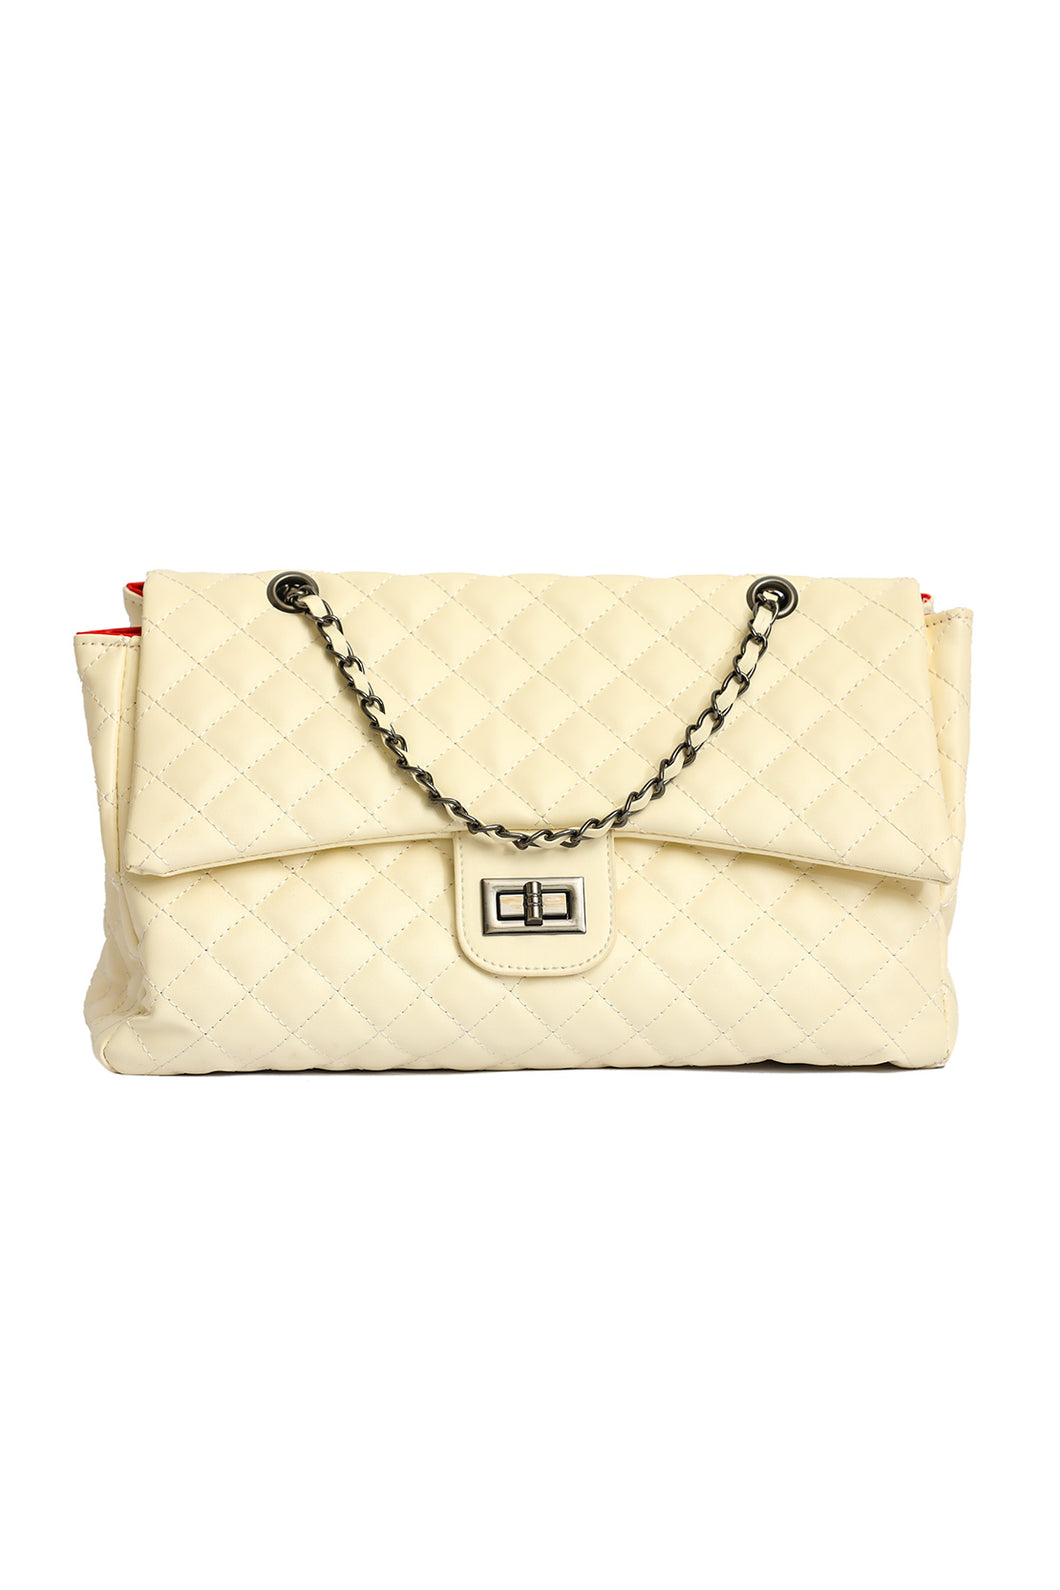 Quilted Chain Bag - Cream